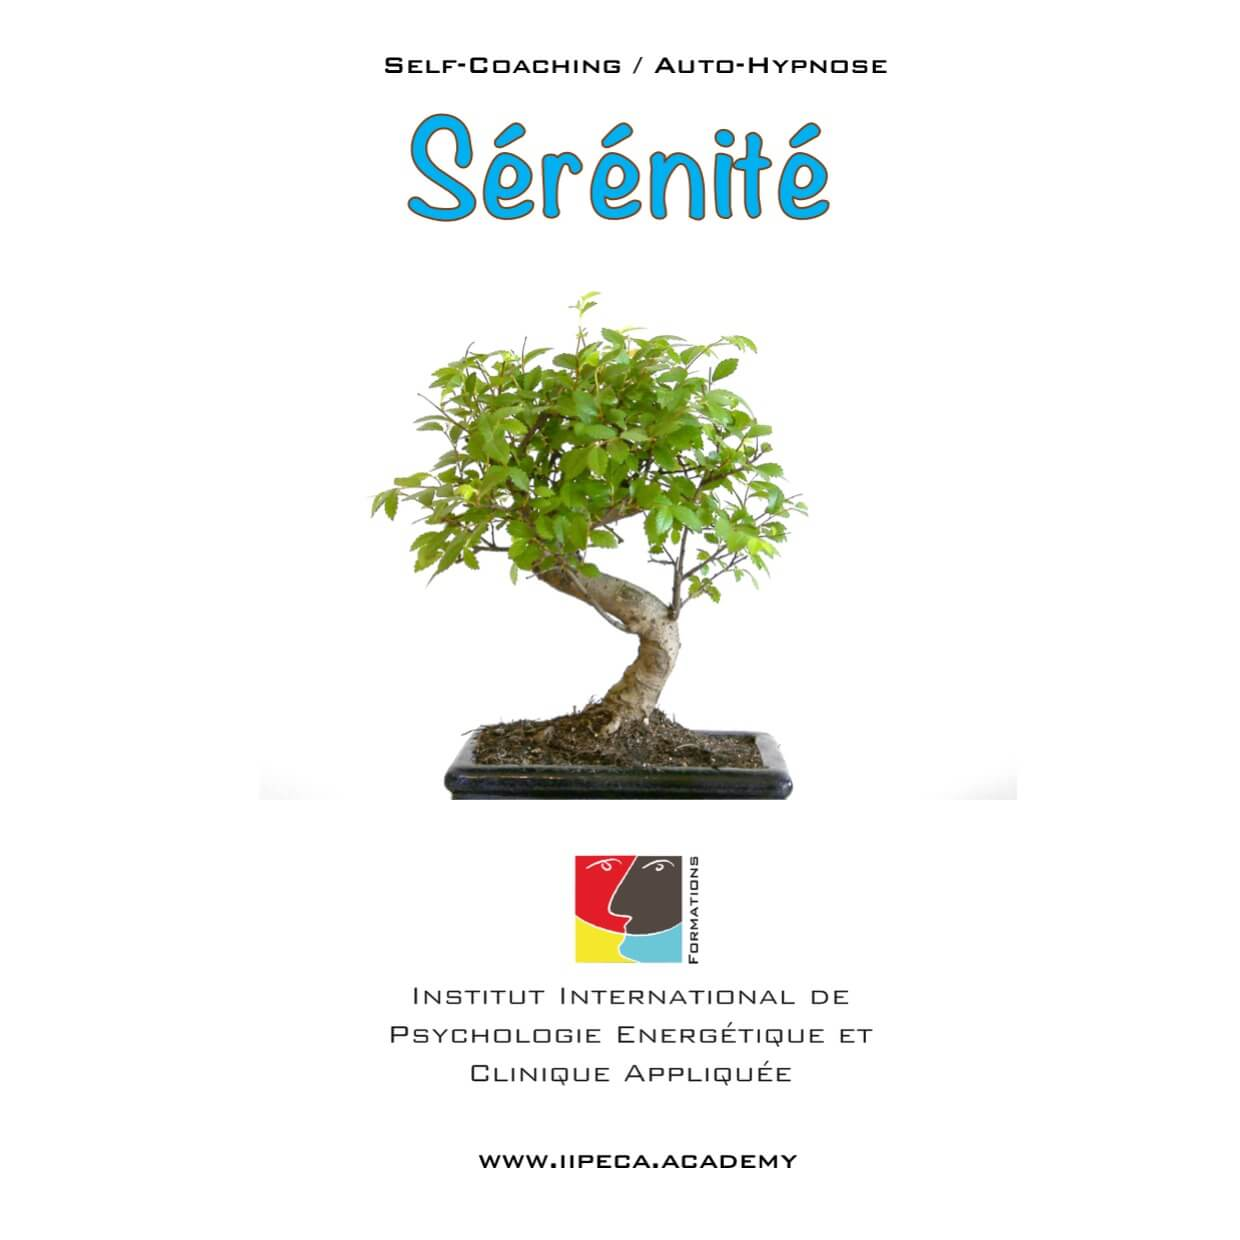 serenite meditation iipeca academy mp3 self coaching auto-hypnose